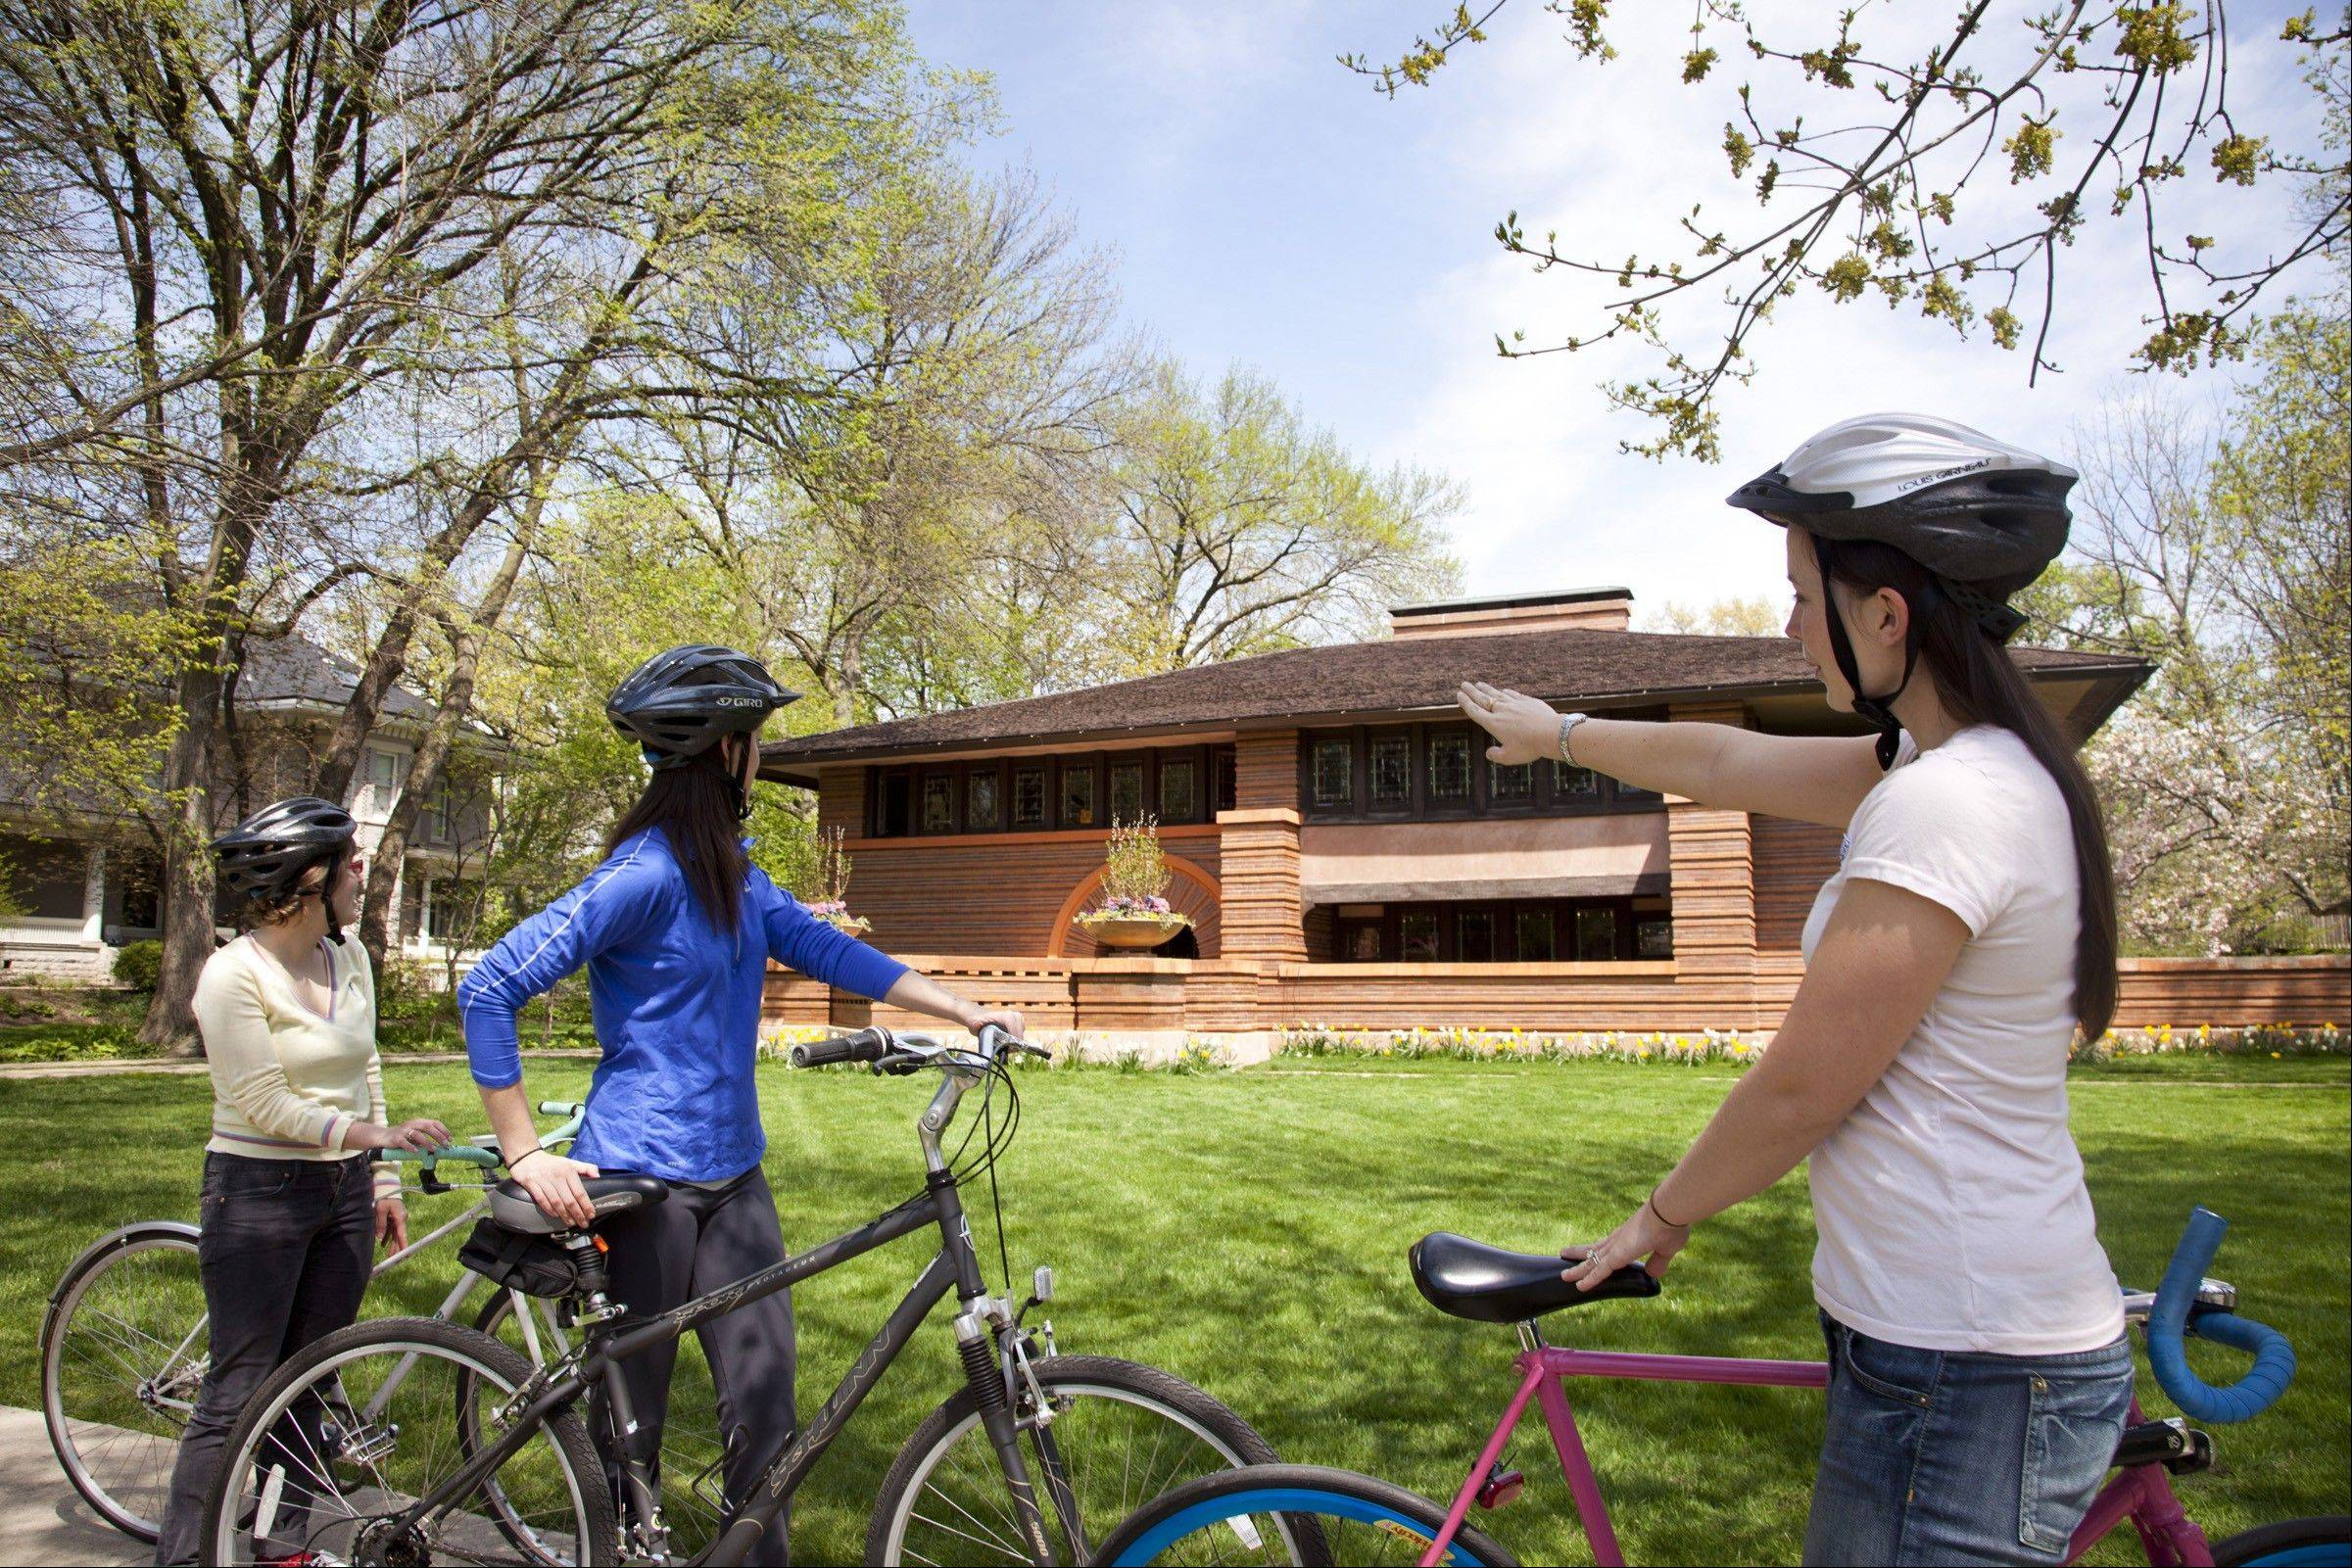 The Pedal Oak Park tour will stop at the Arthur B. Heurtley House in the Frank Lloyd Wright Historic District.